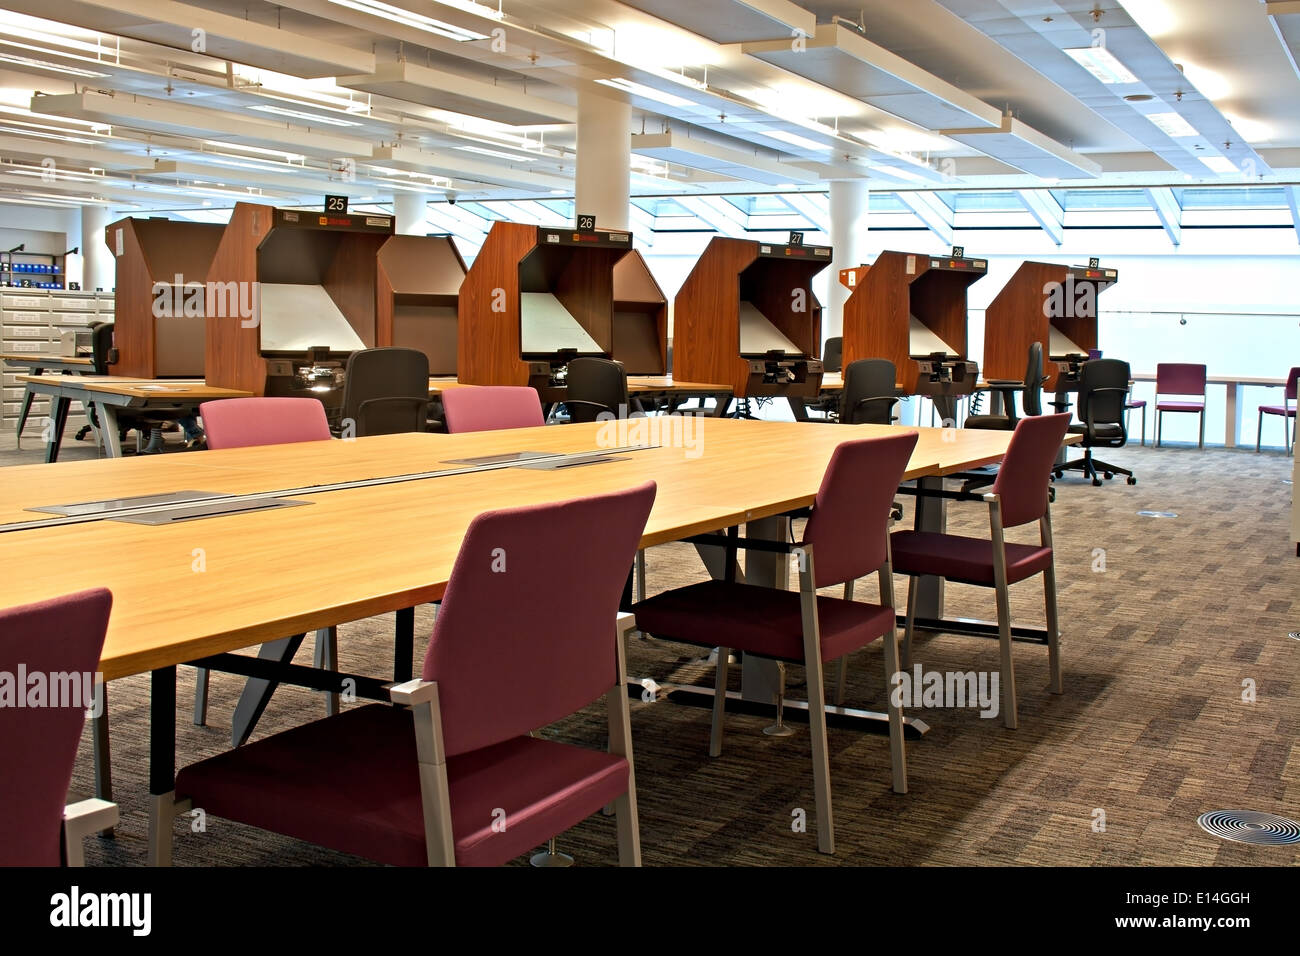 Family history research room in a library - Stock Image